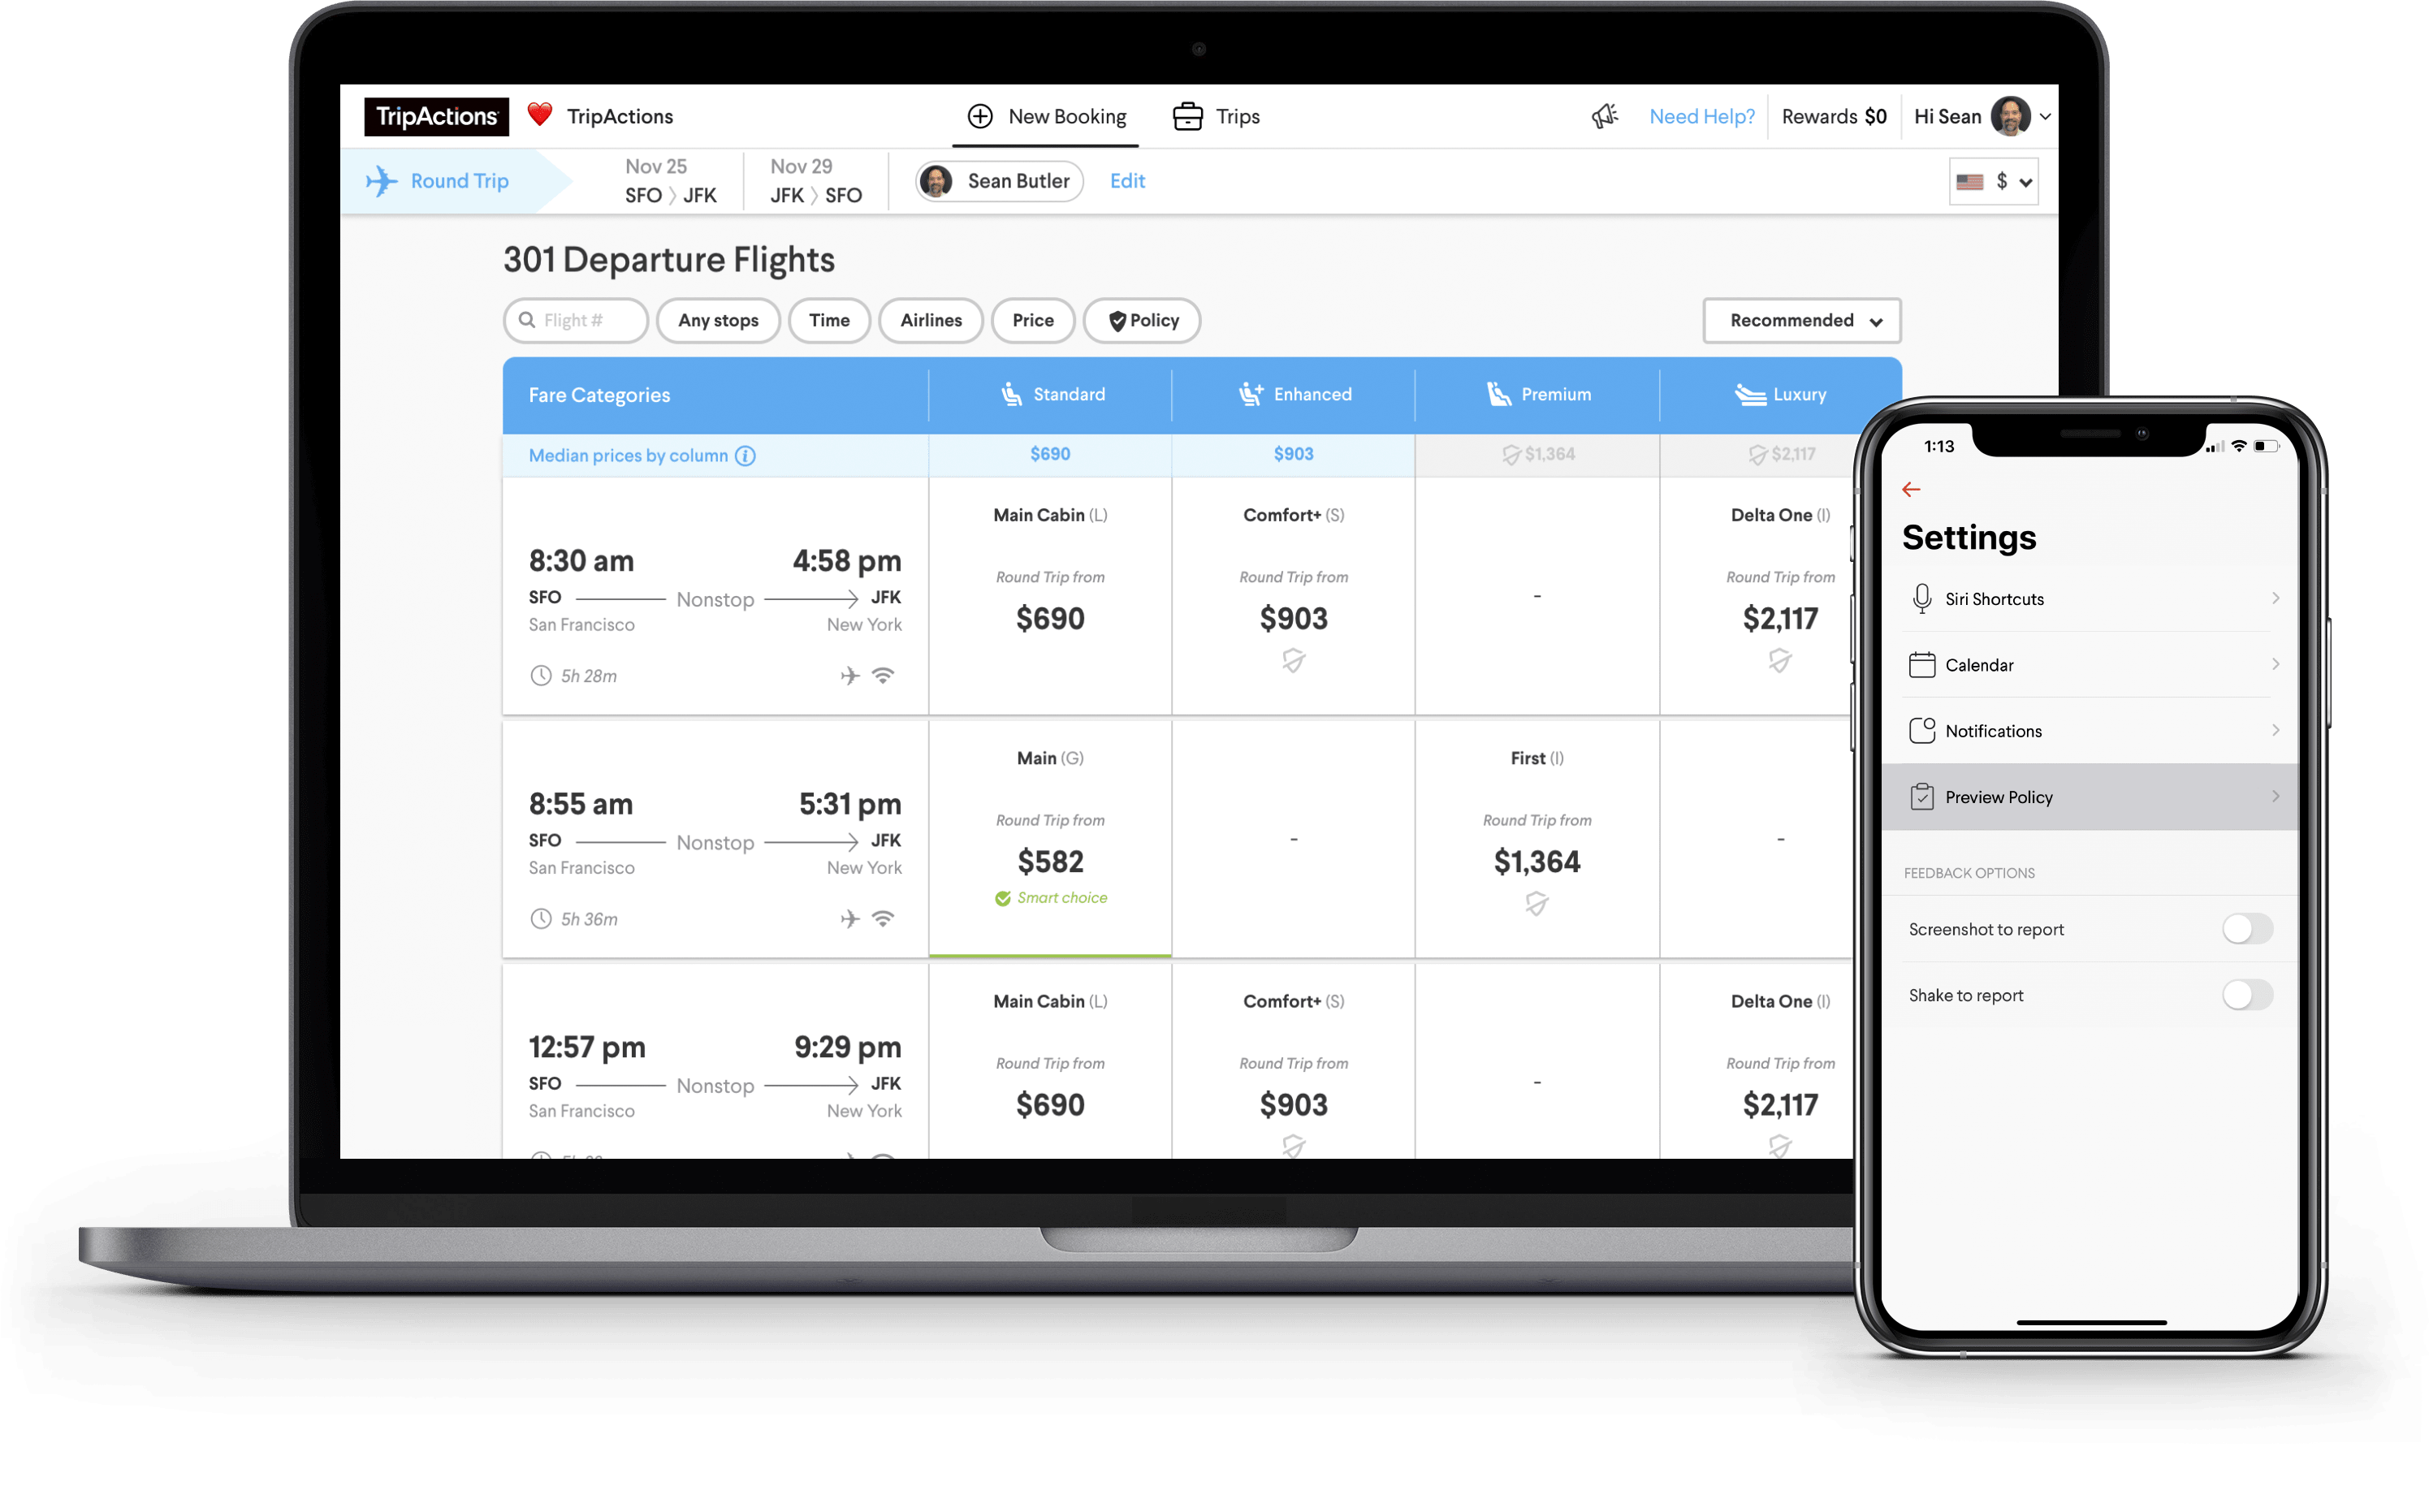 TripActions Product Screenshot - Unrivaled inventory and search powered by machine learning